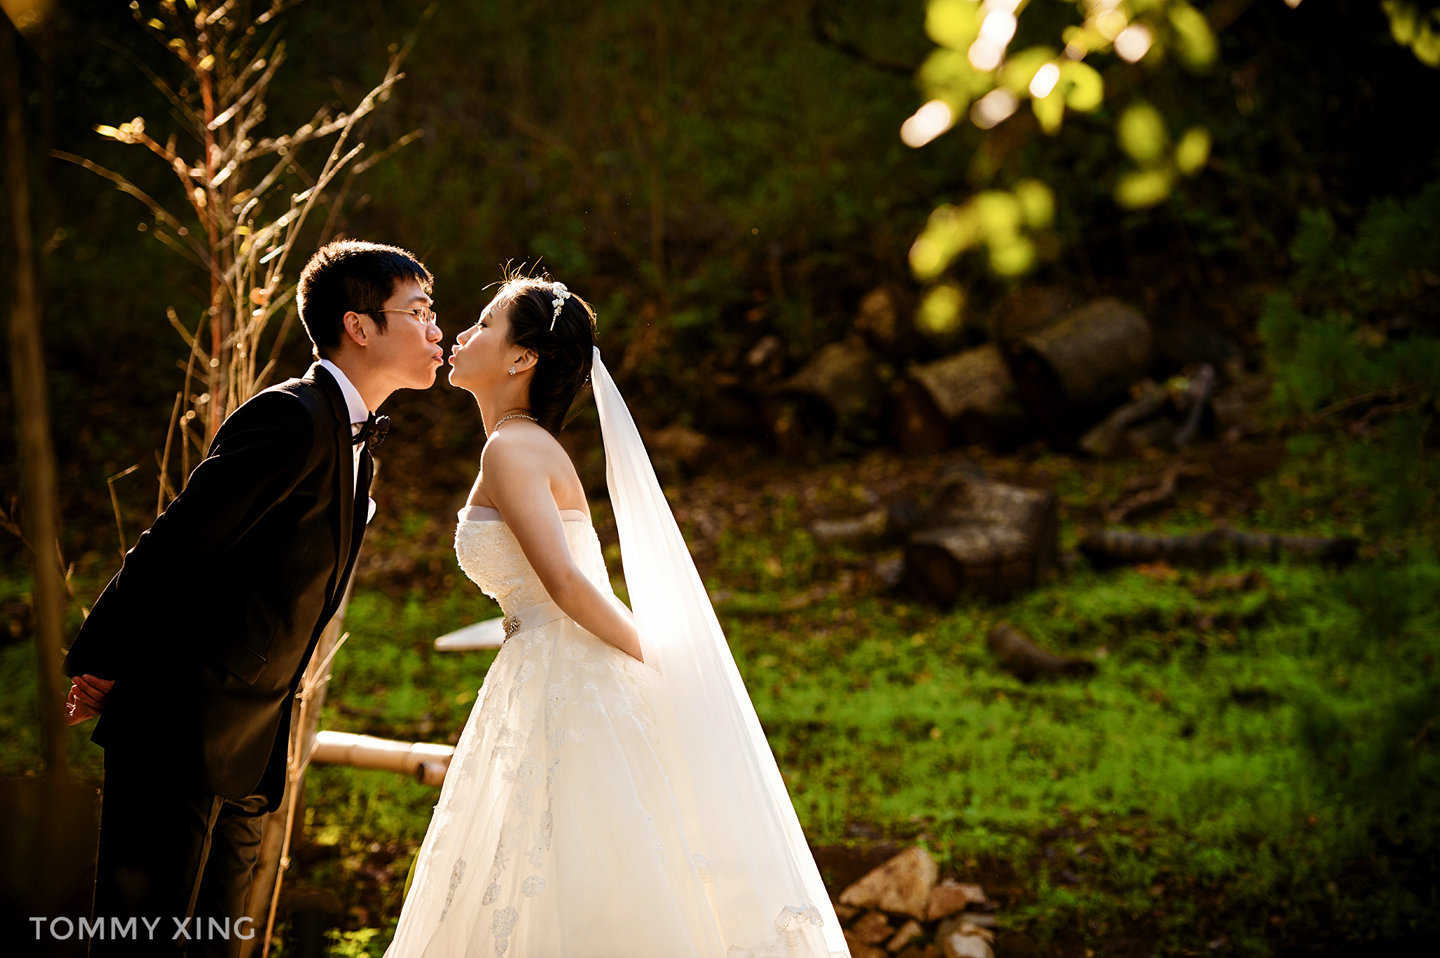 San Francisco Bay Area Chinese Pre Wedding Photographer Tommy Xing 旧金山湾区婚纱照摄影 09.jpg